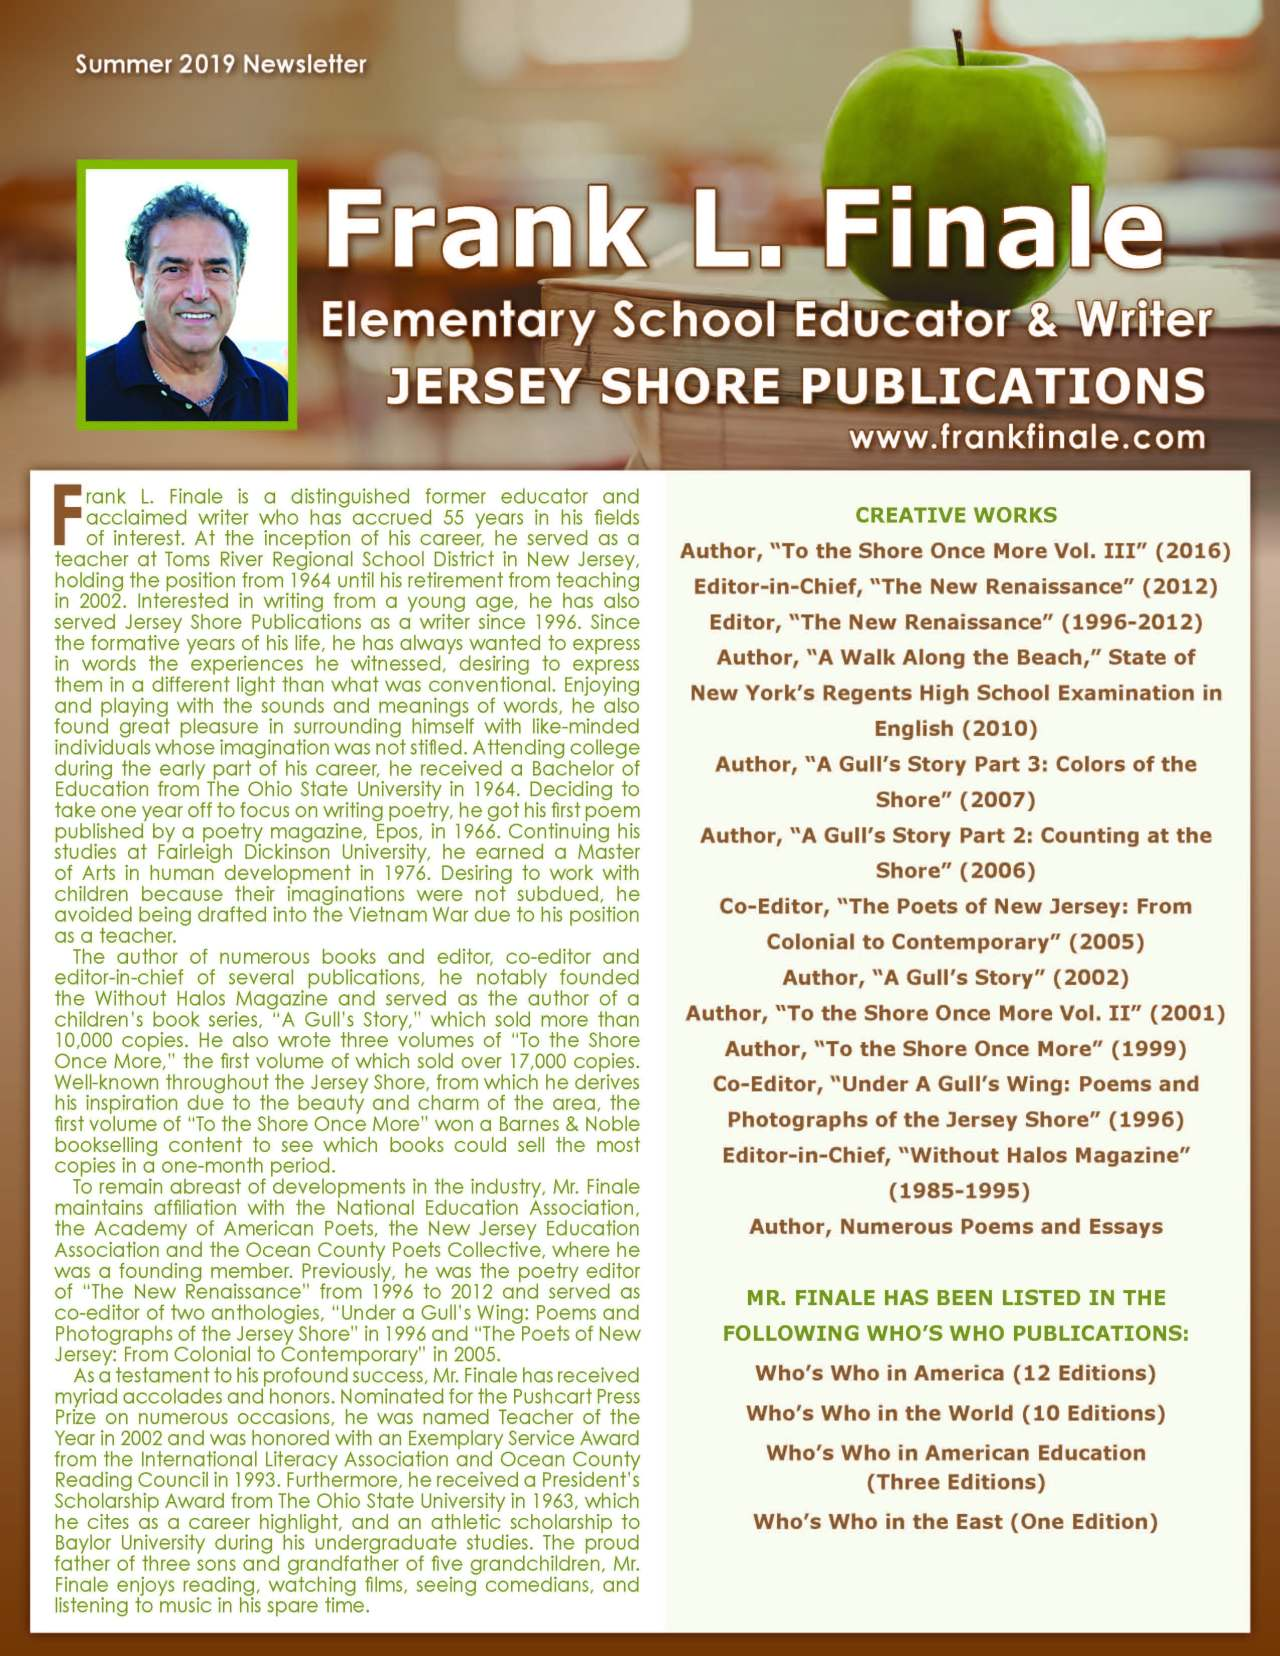 Finale, Frank 3993361_25956384 Newsletter REVISED